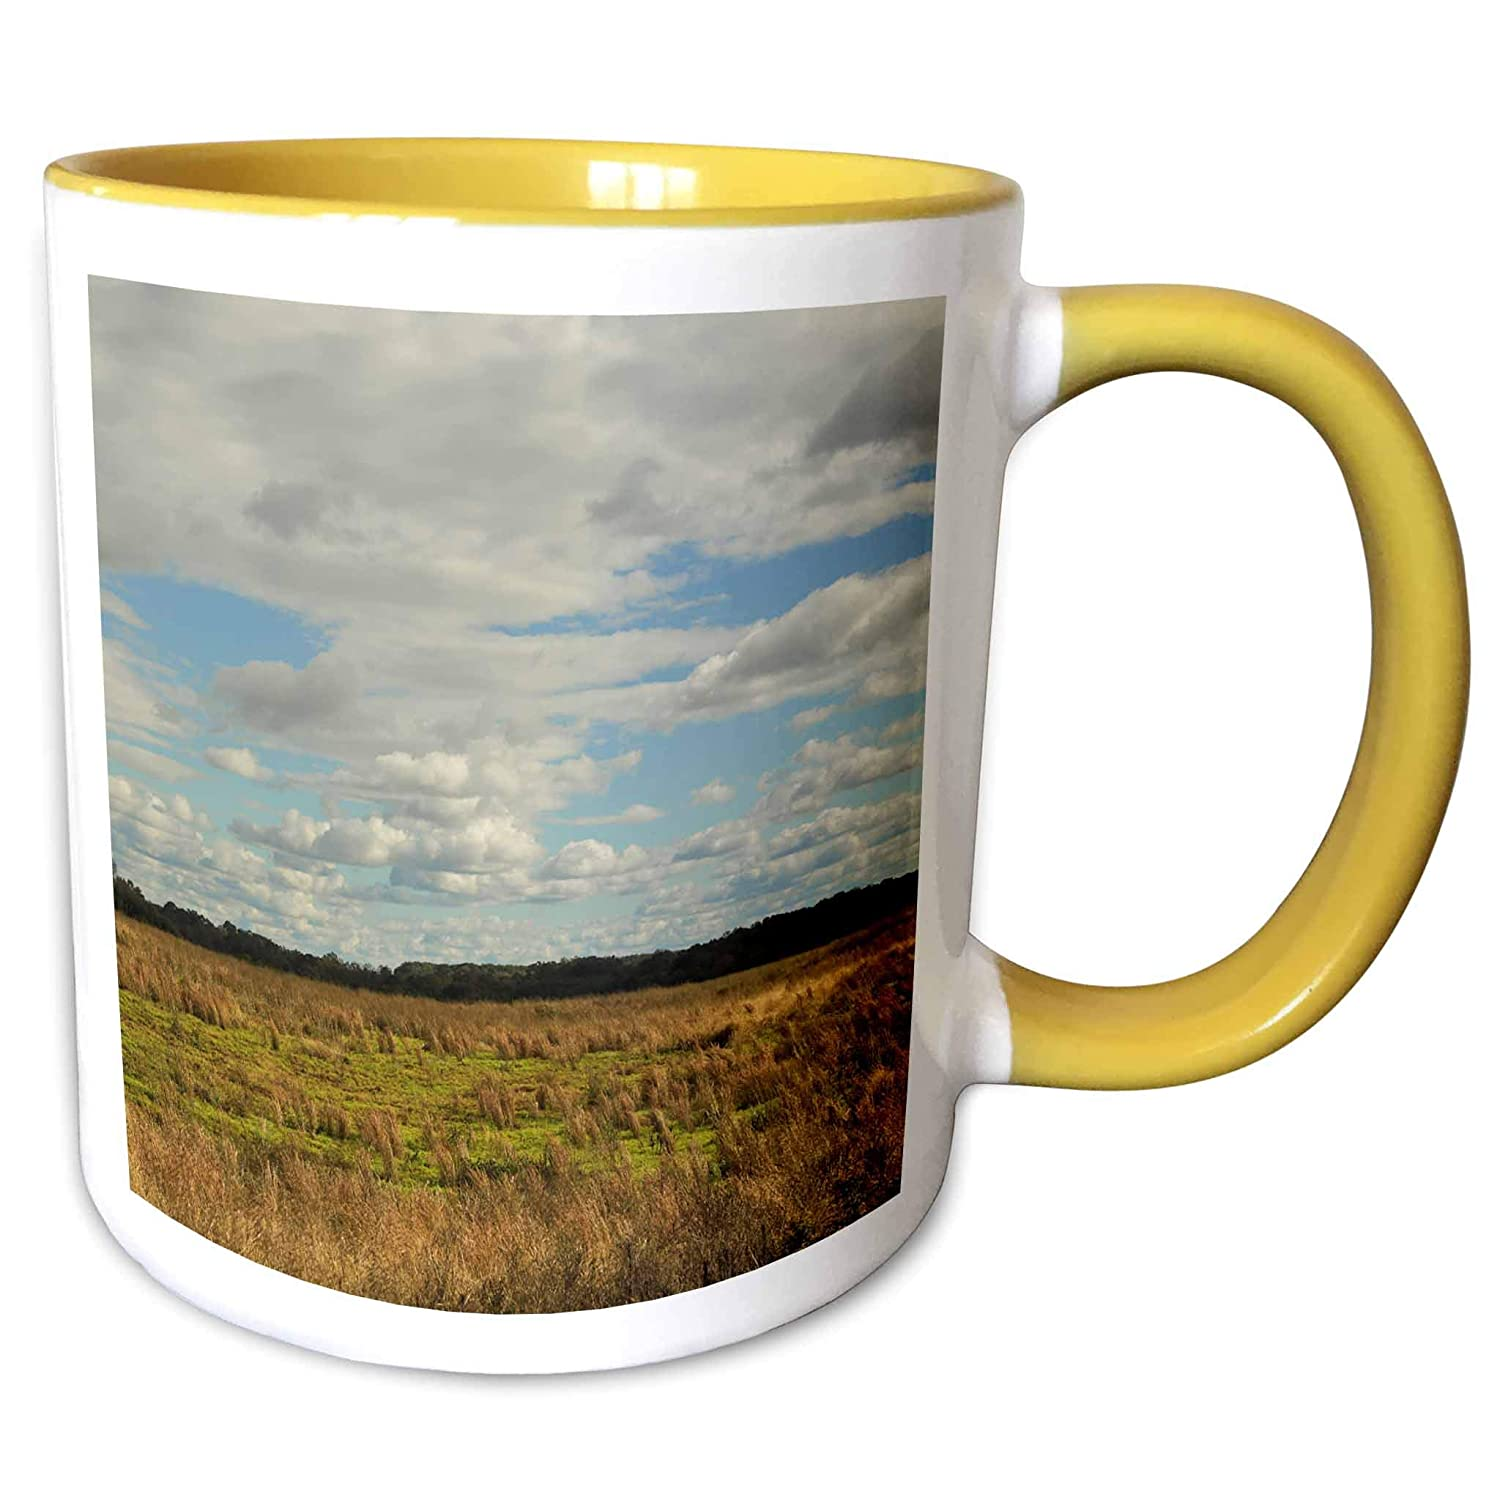 3dRose Stamp City - nature - Photograph of an open field in South Carolina on a cloudy day. - 15oz Two-Tone Yellow Mug (mug_302844_13)